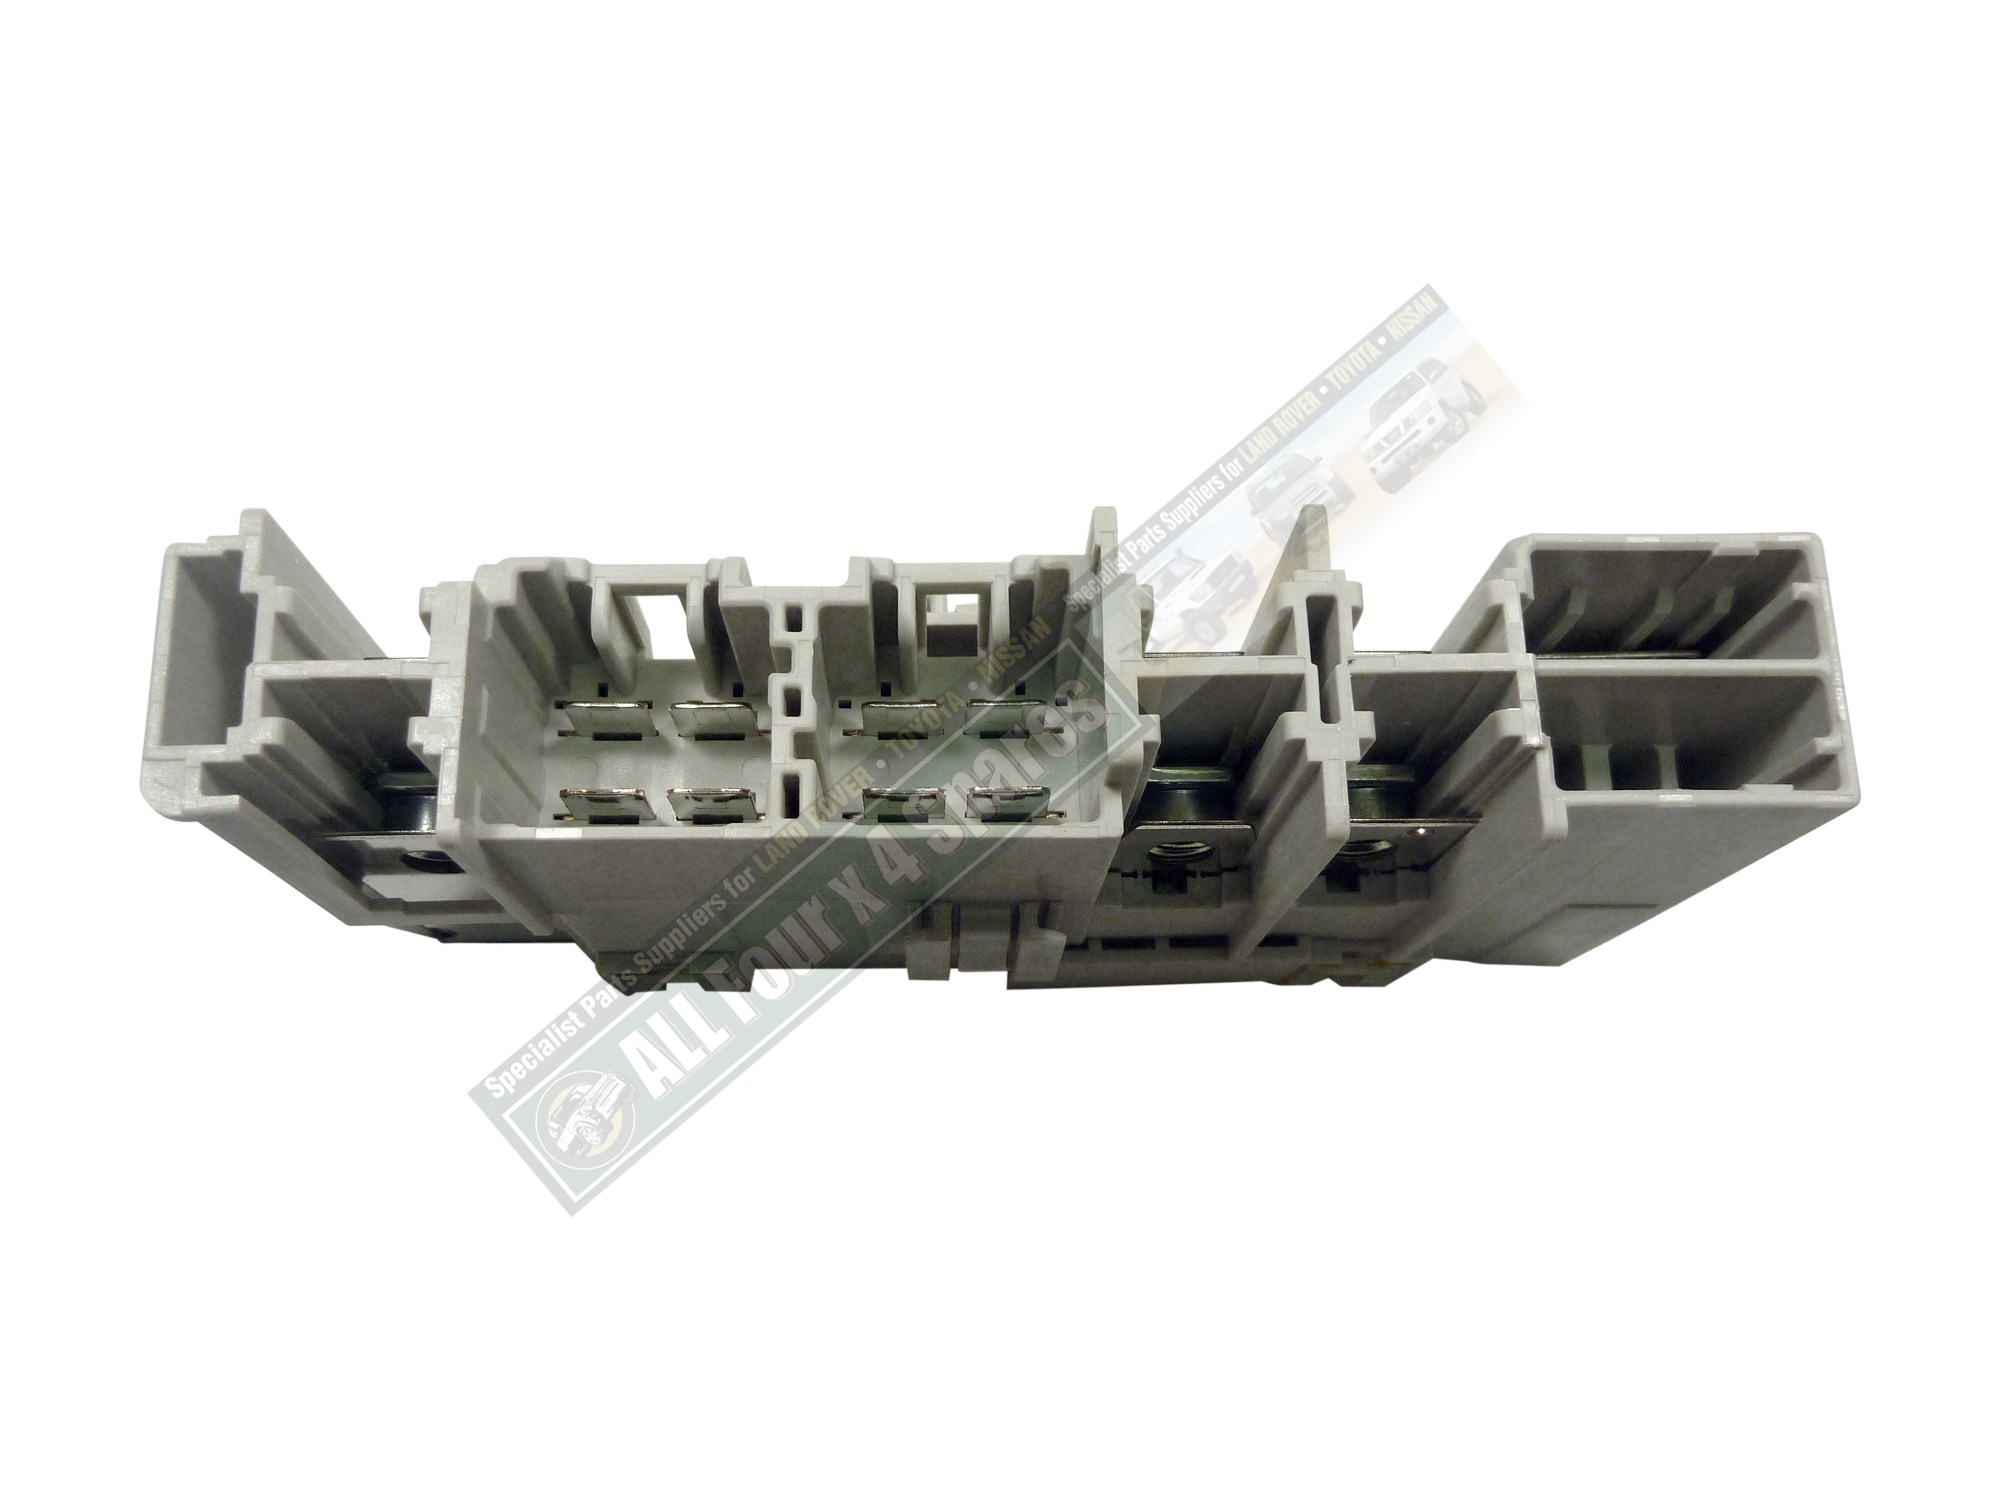 hight resolution of fuse fusible link suitable for hilux 2005 2008 kun ggn tgn 4wd and 2wd